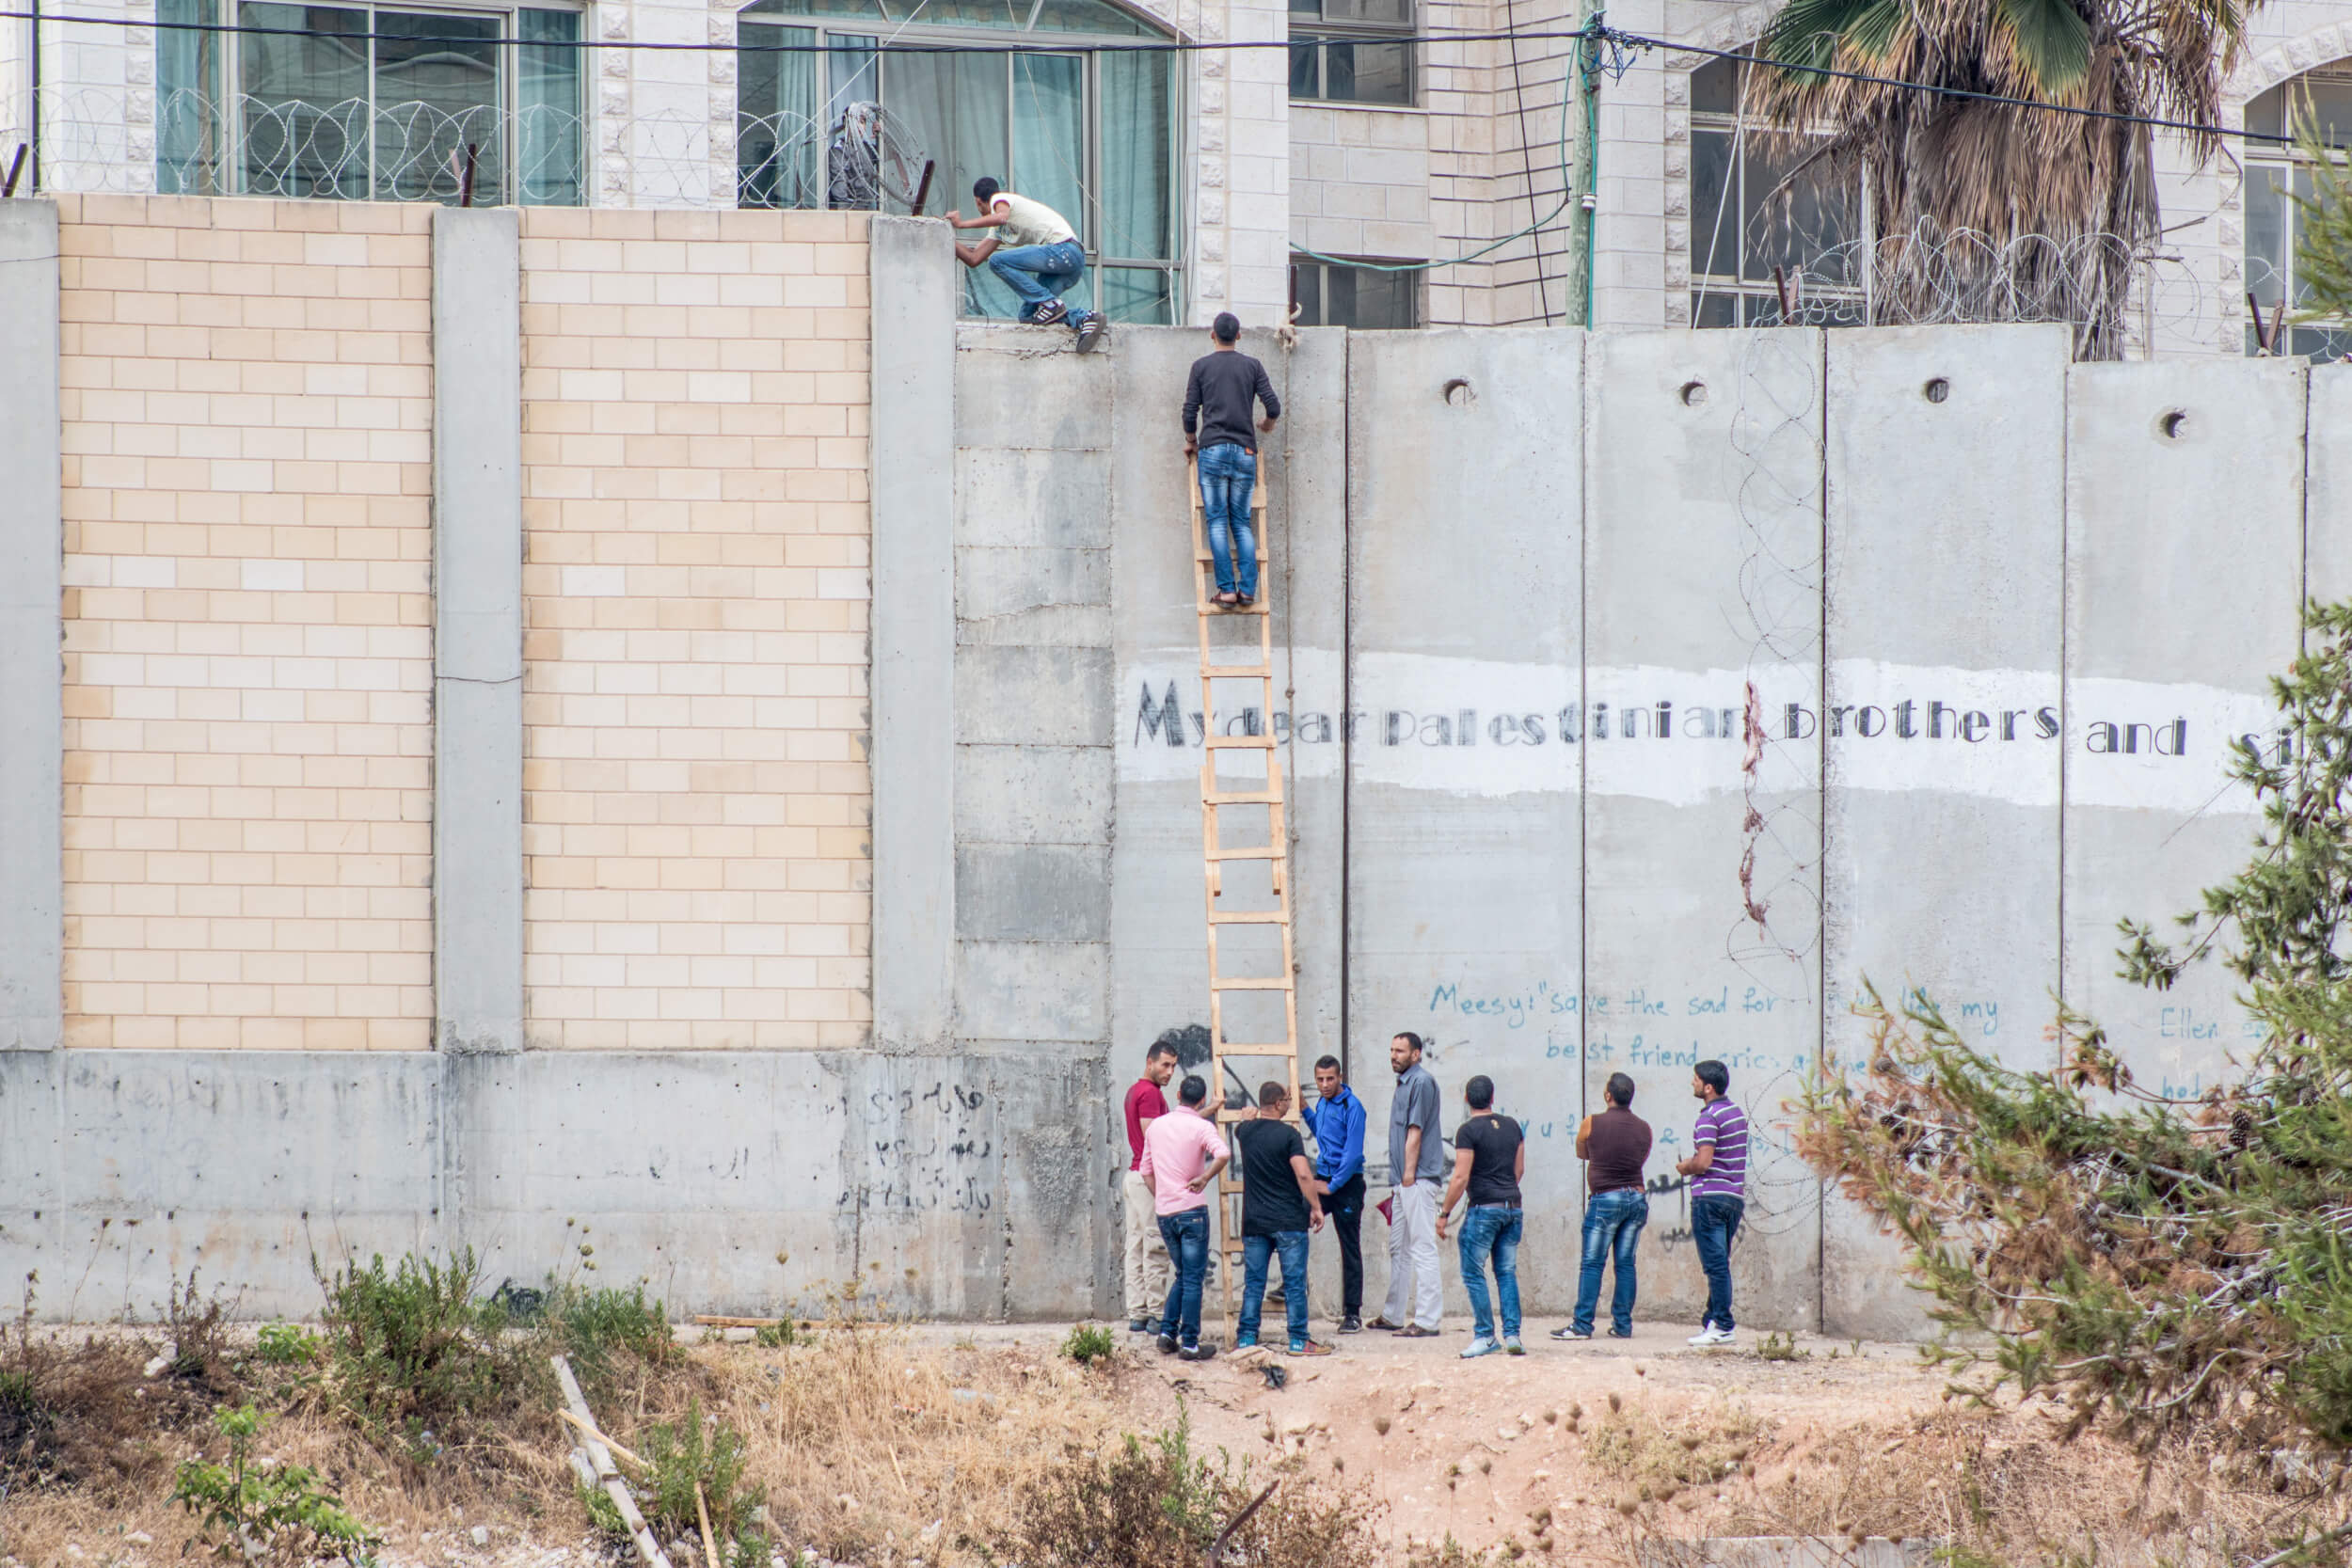 After being dispersed by Israeli authorities, Palestinians trying to cross illegally change to another prepared location. (Photo: Karam Saleem)